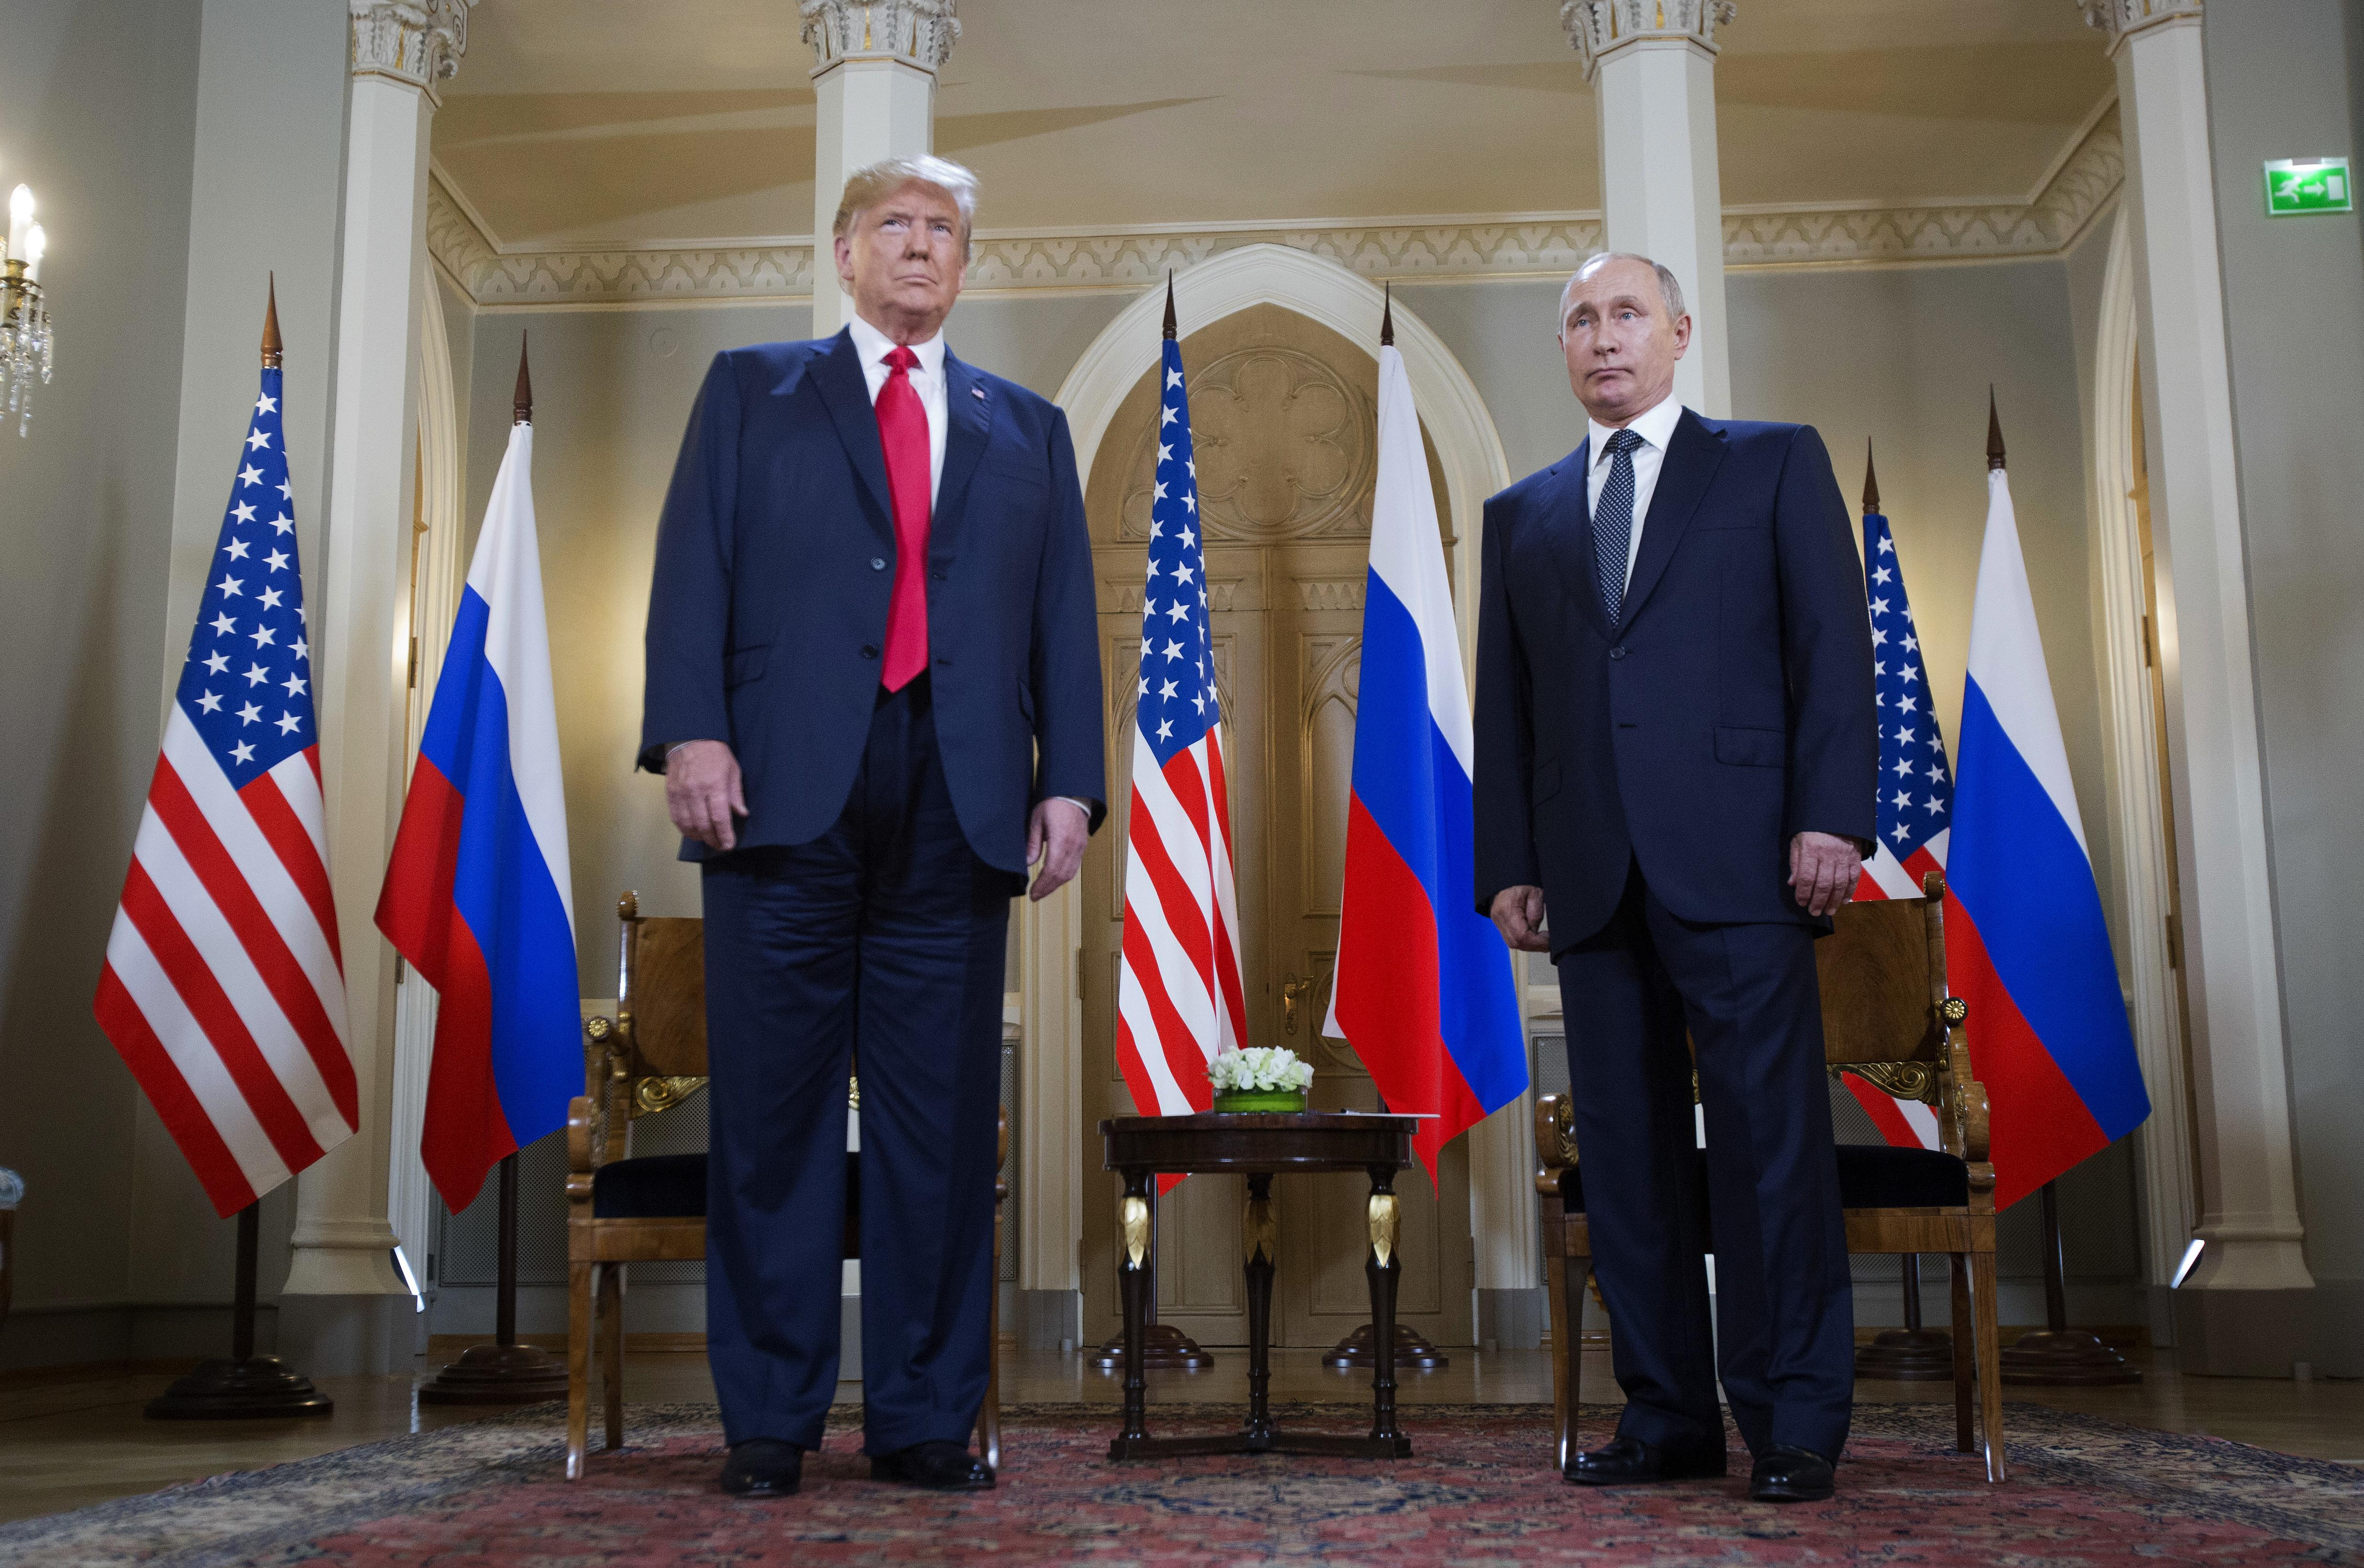 u s and russian relations after the In testimony before the us house of representatives committee on foreign affairs, steven pifer discusses us-russian relations and offers recommendations for future engagement.